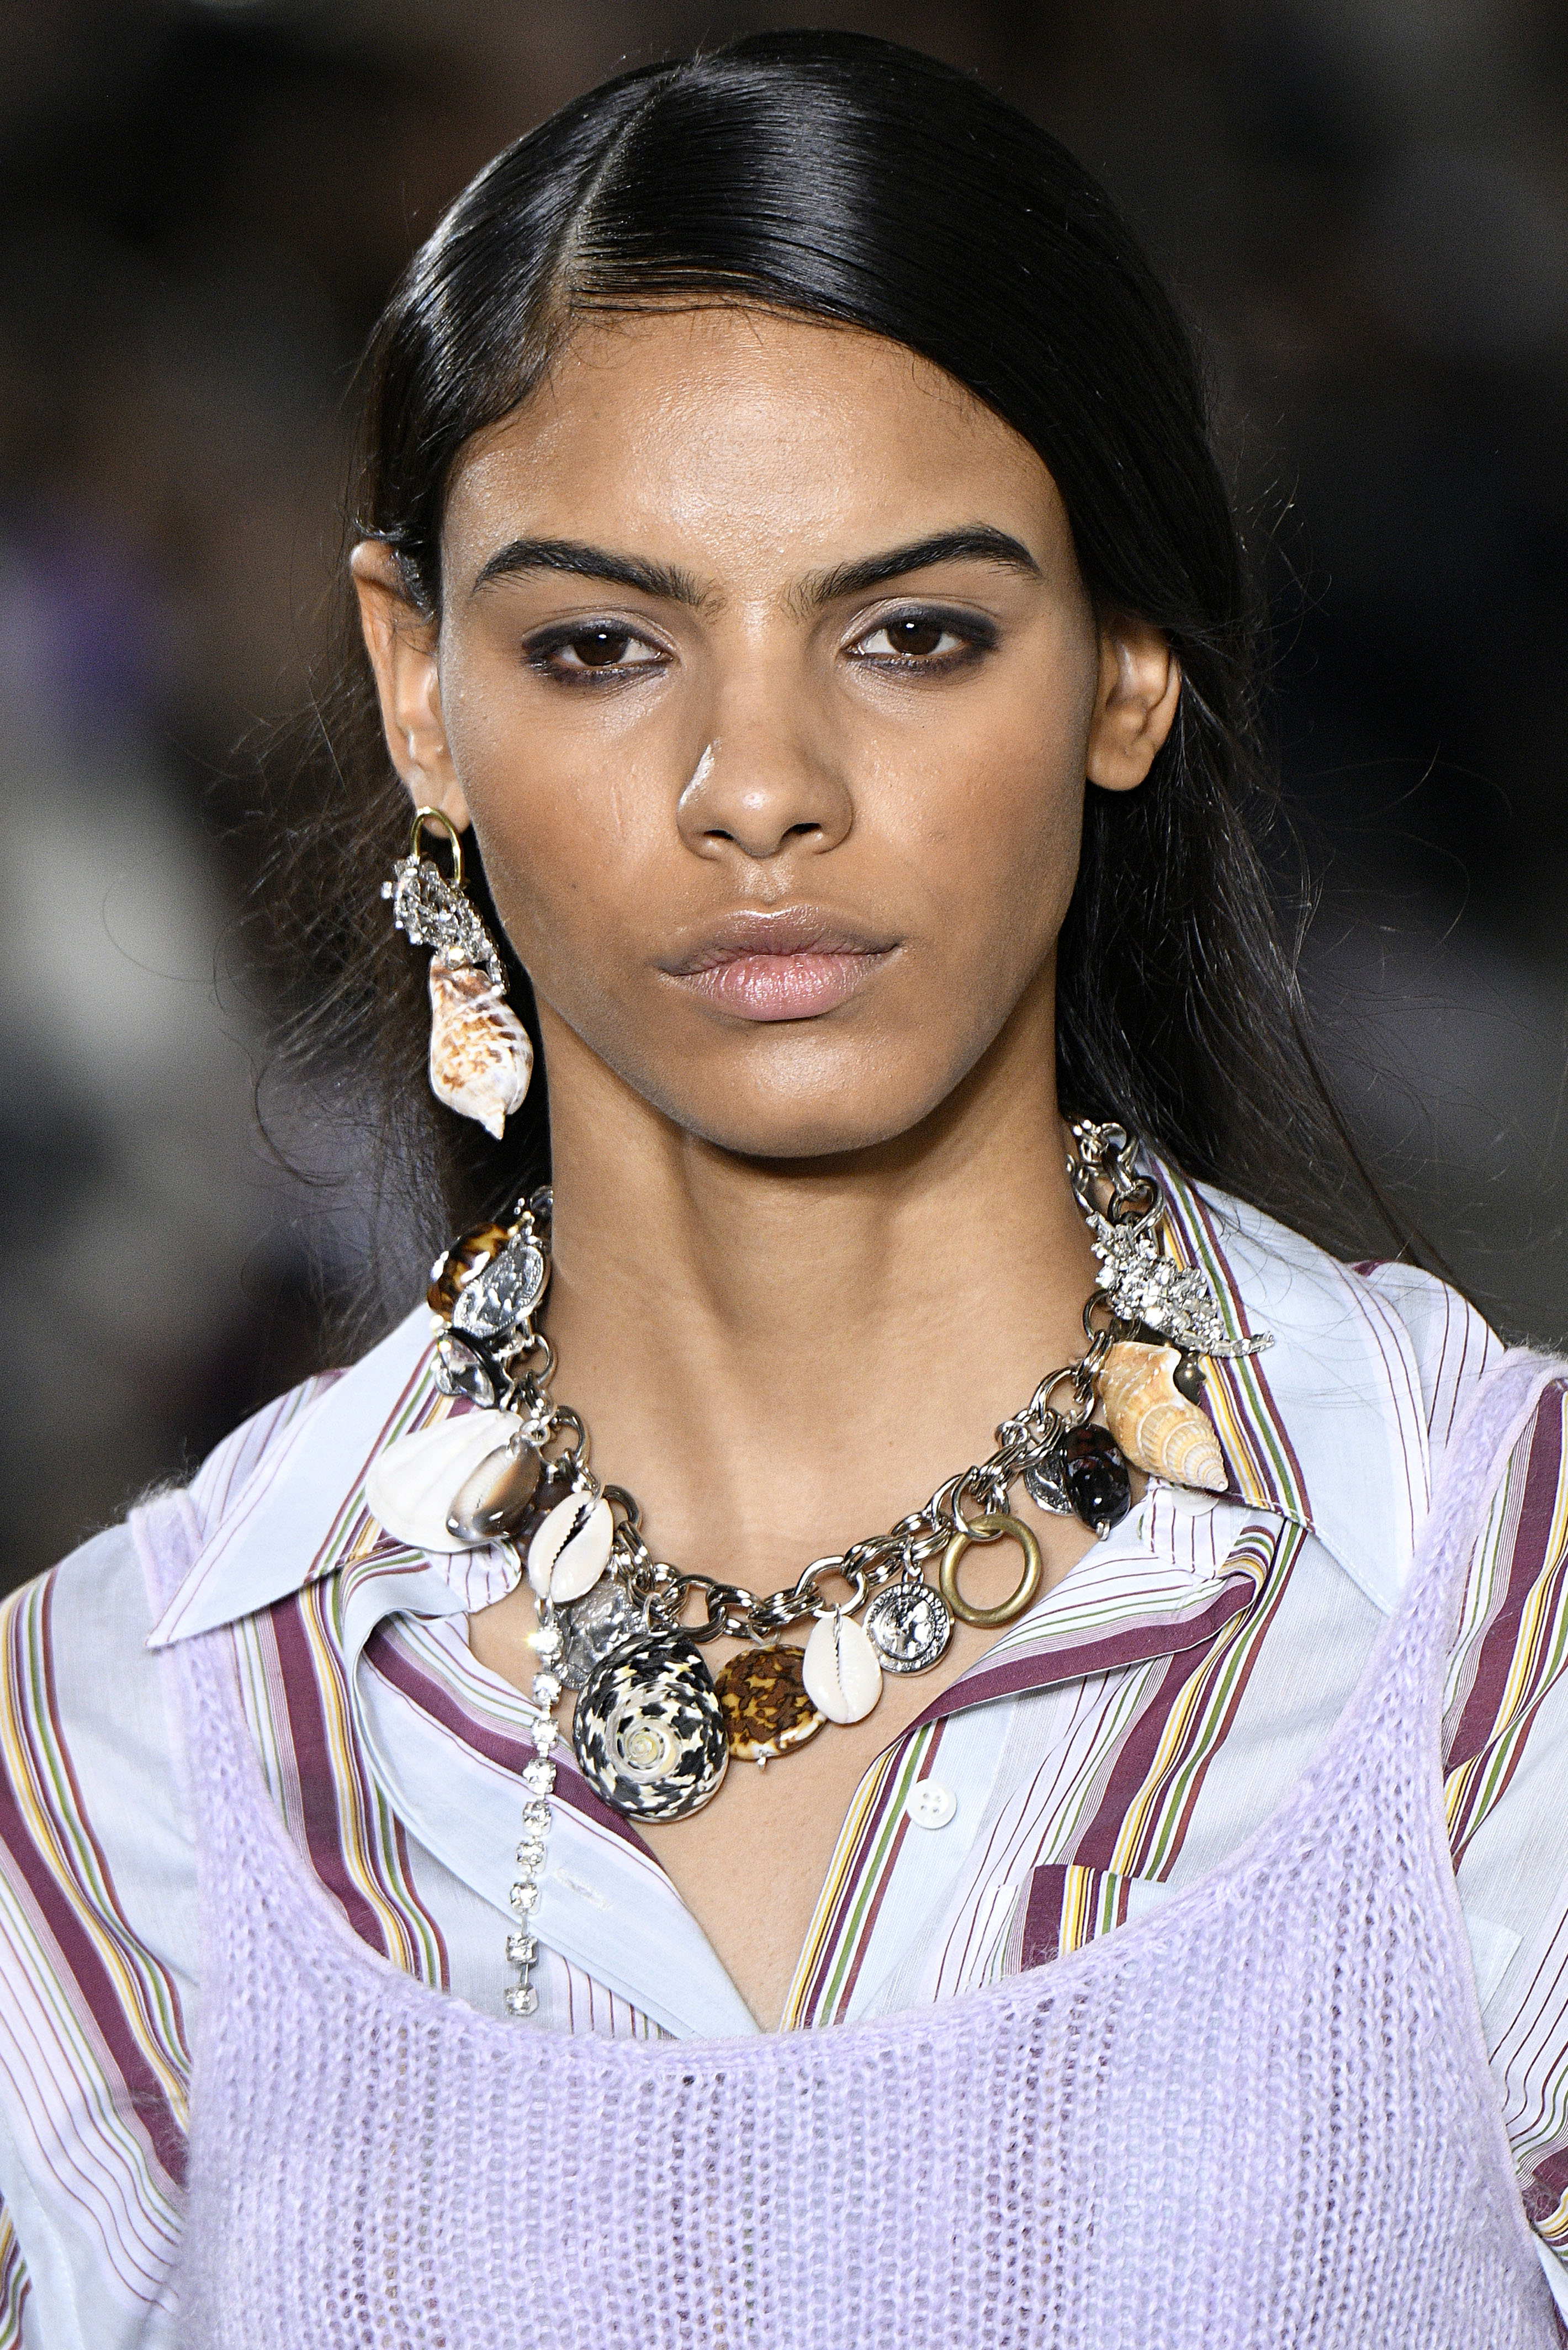 3.1 Phillip Lim gave an approval to the single earring trend. Image: Courtesy Victor VIRGILE/Gamma-Rapho via Getty Images